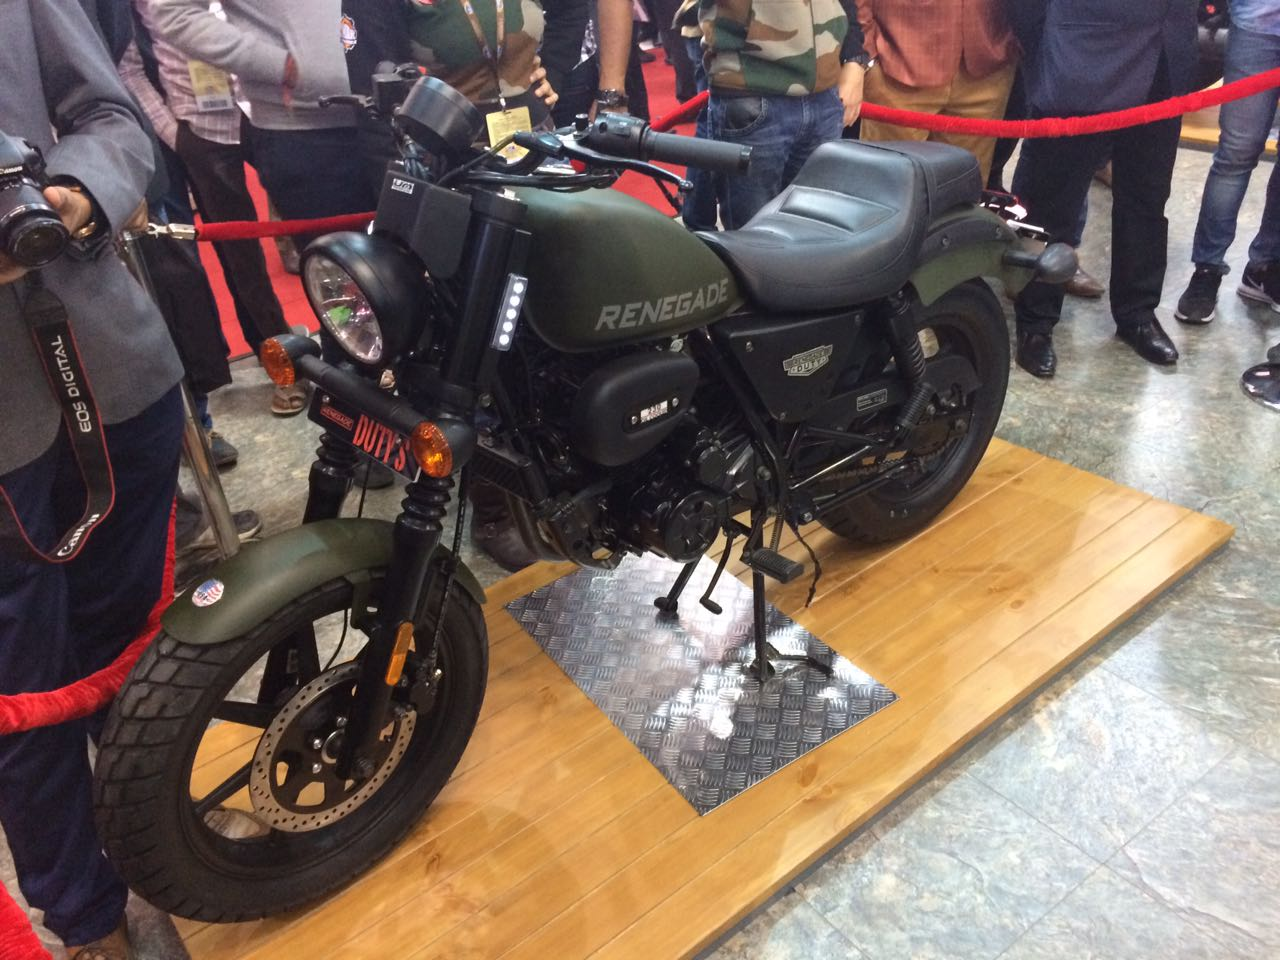 Um Renegade Duty S And Duty Ace Launched At Auto Expo 2018